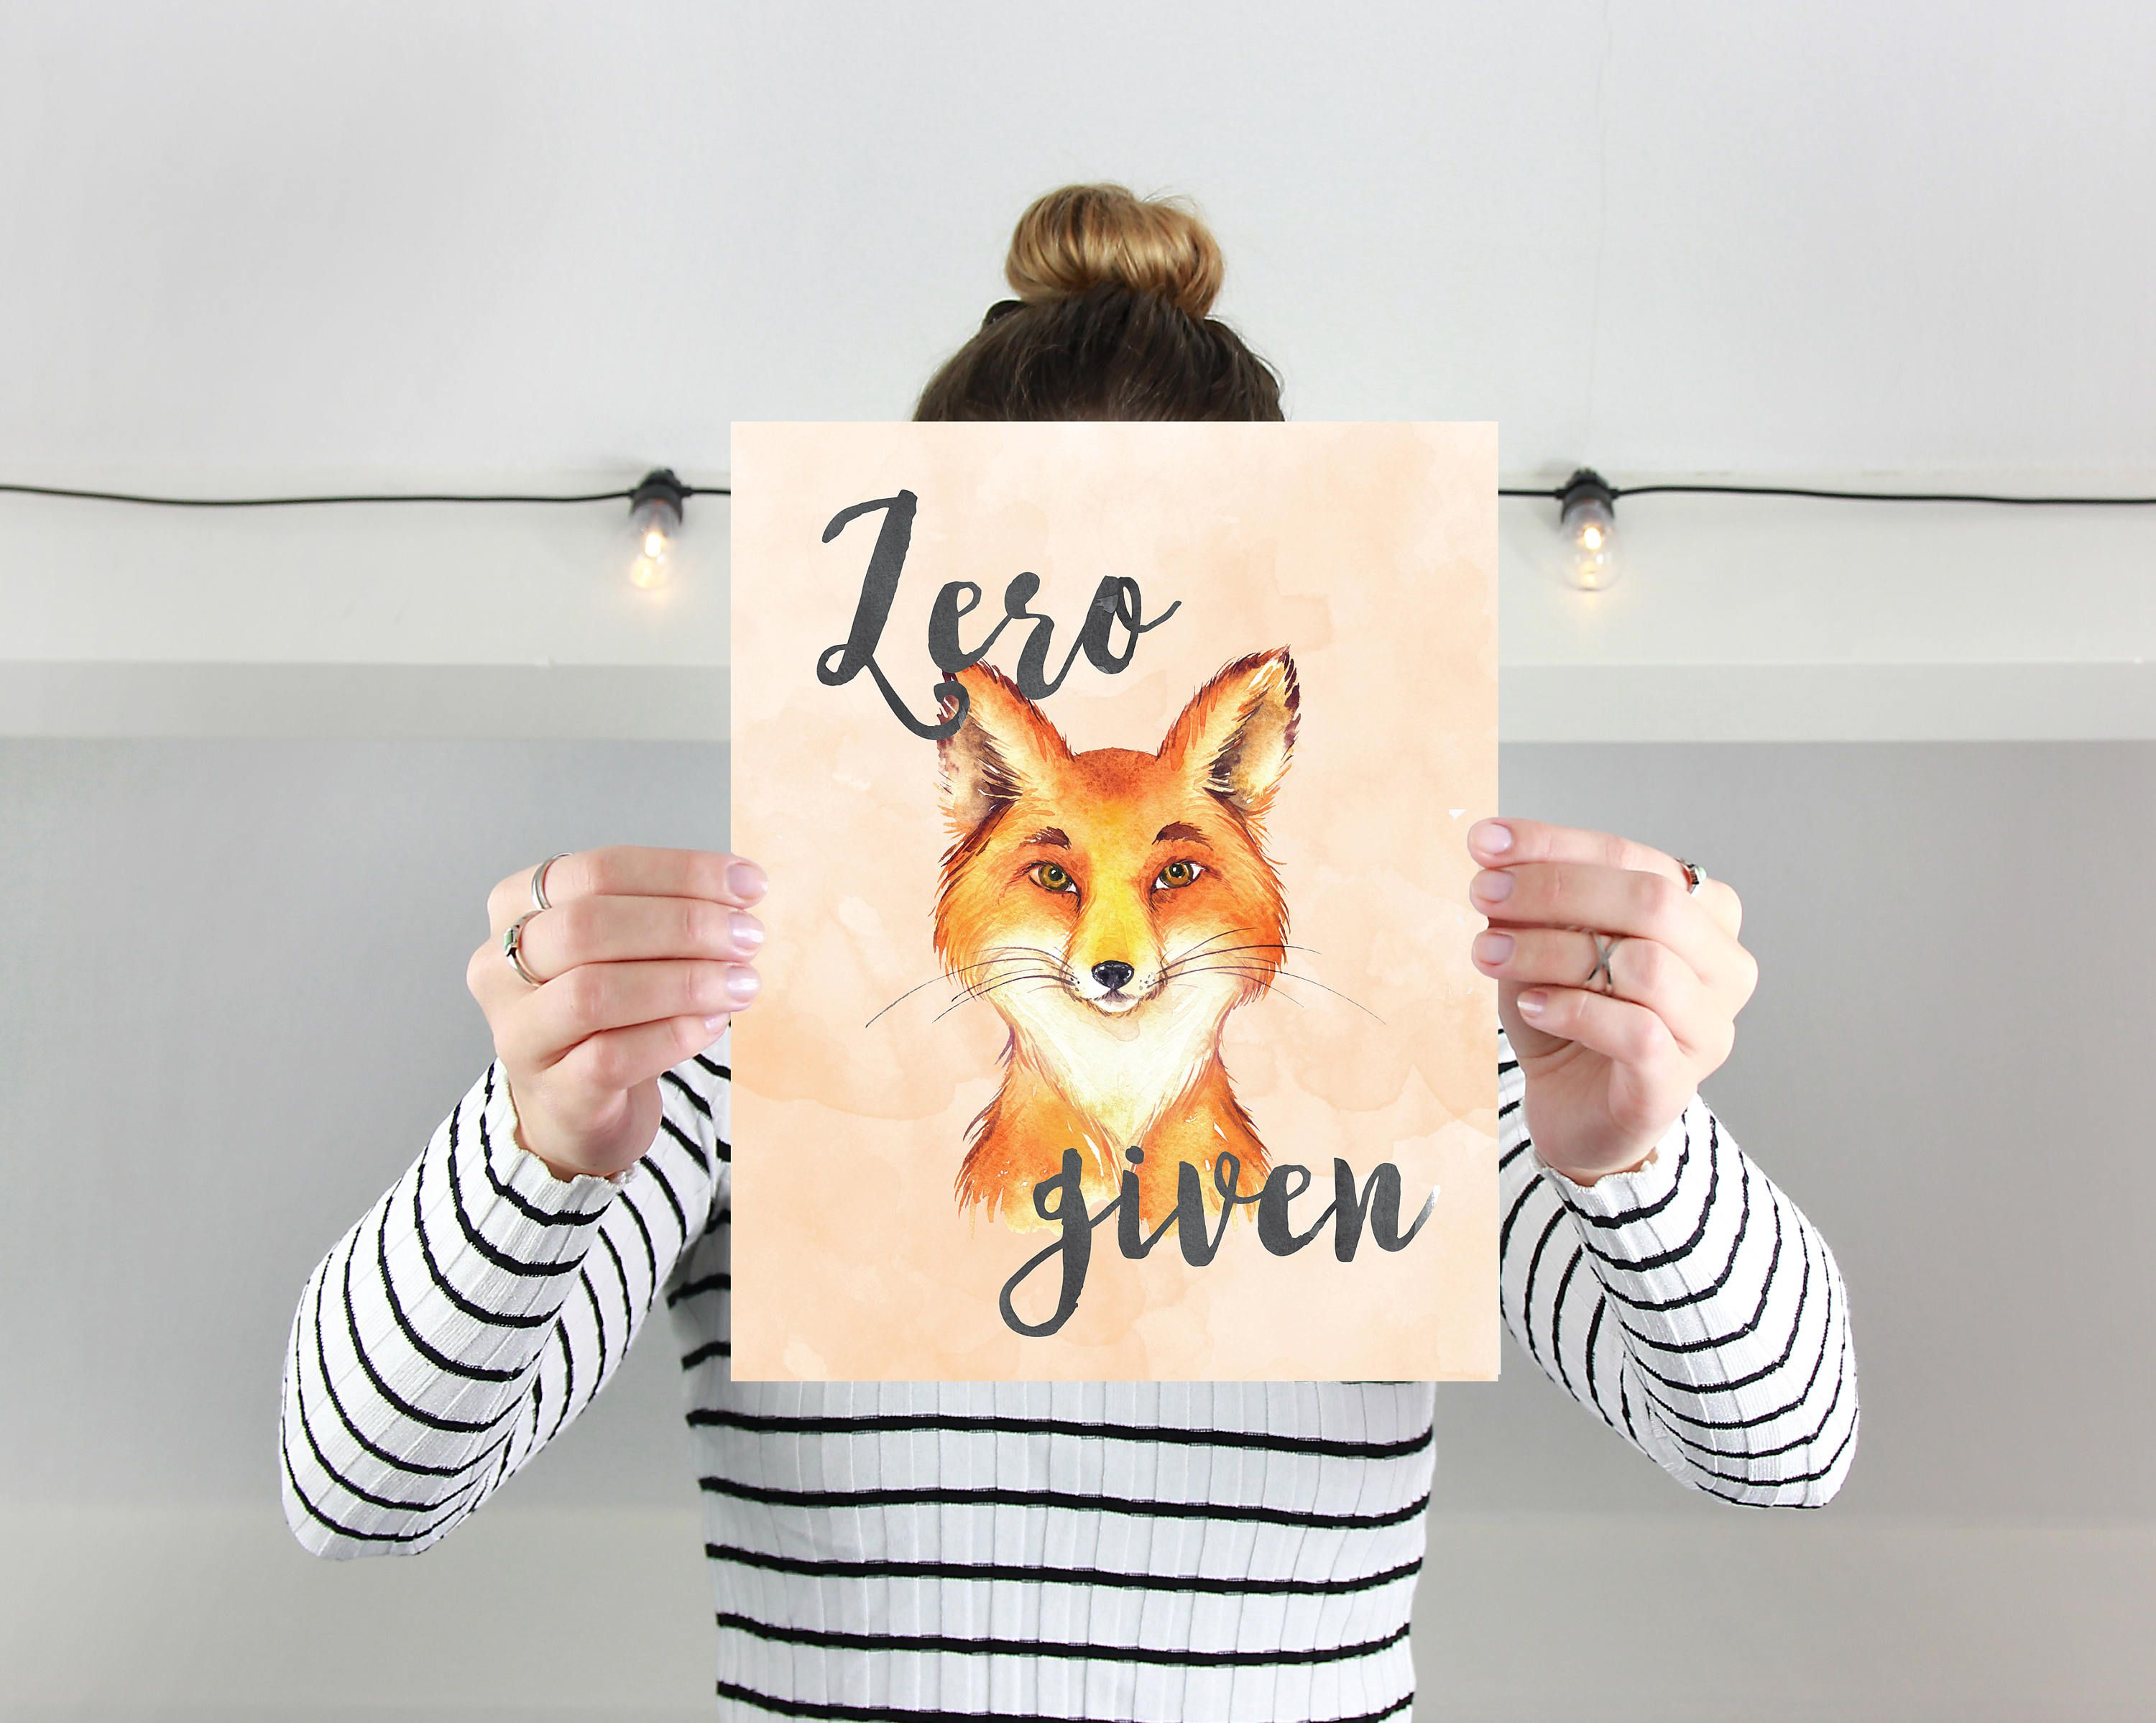 Funny Quote Wall Art   Zero Fox Given   Quirky Art Print   Humorous Quote